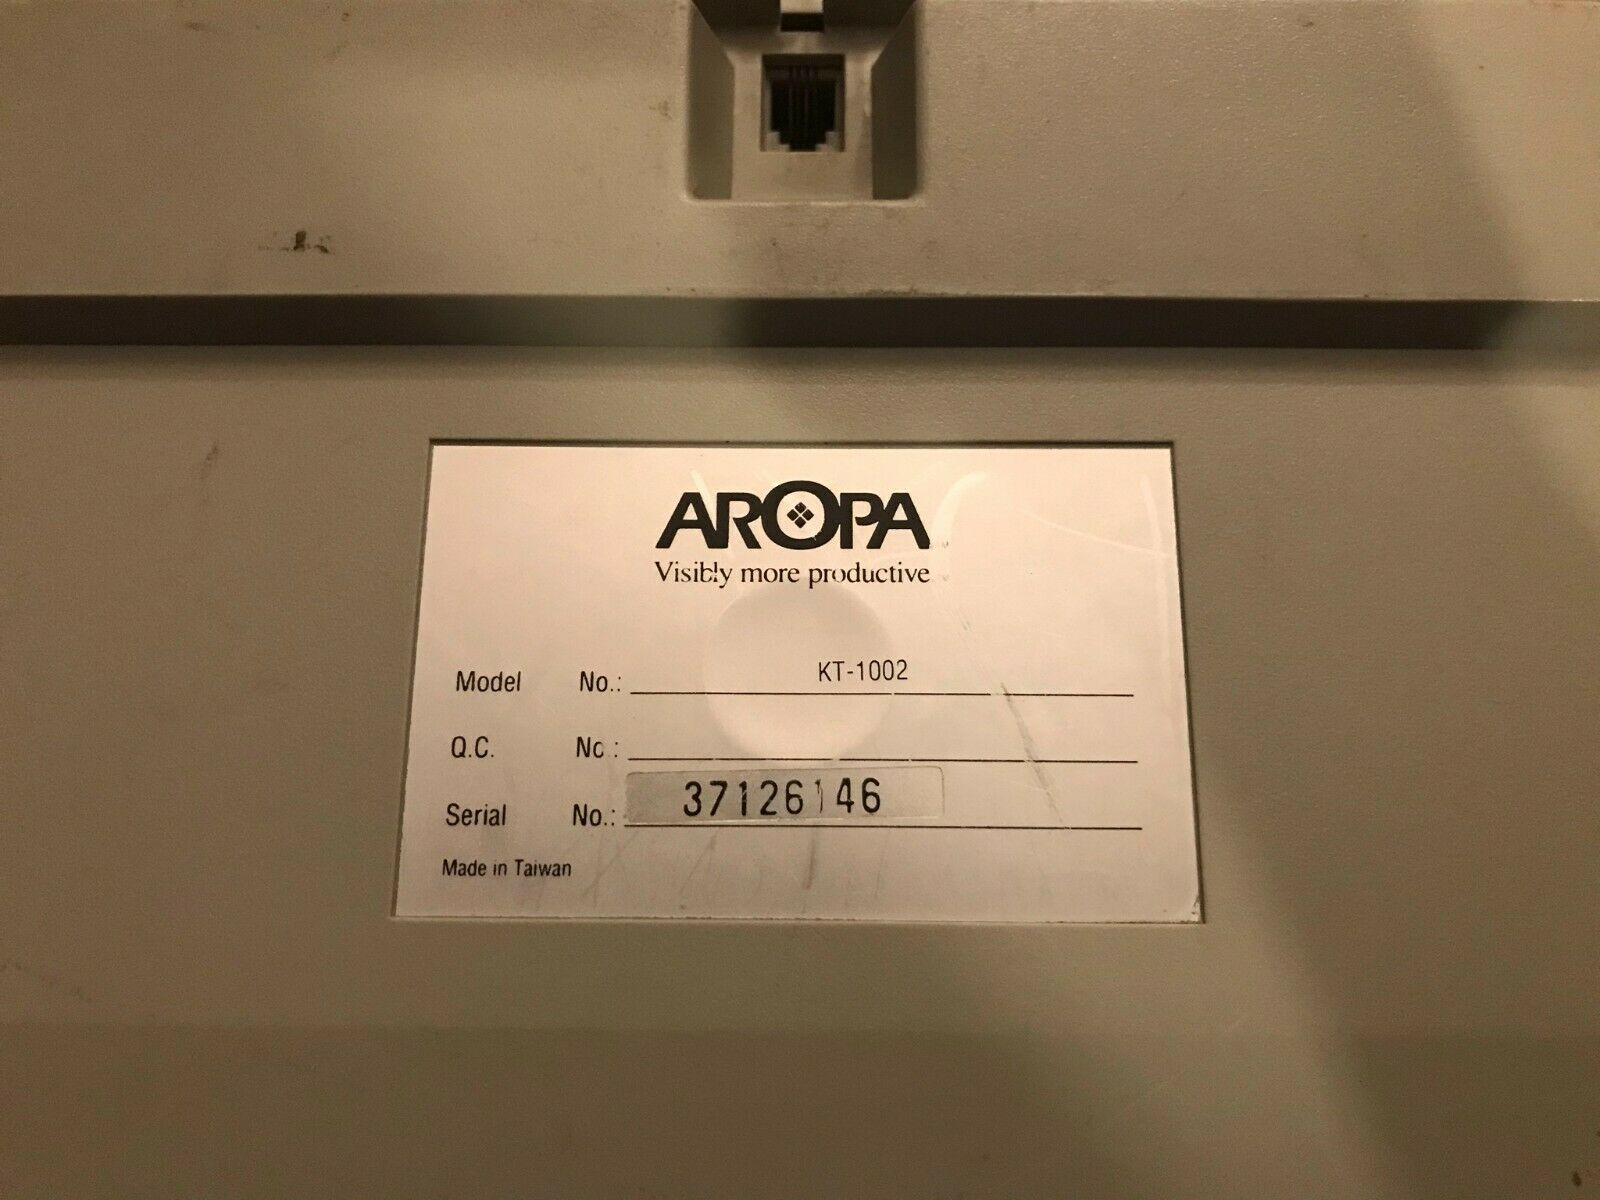 aropa label.jpg